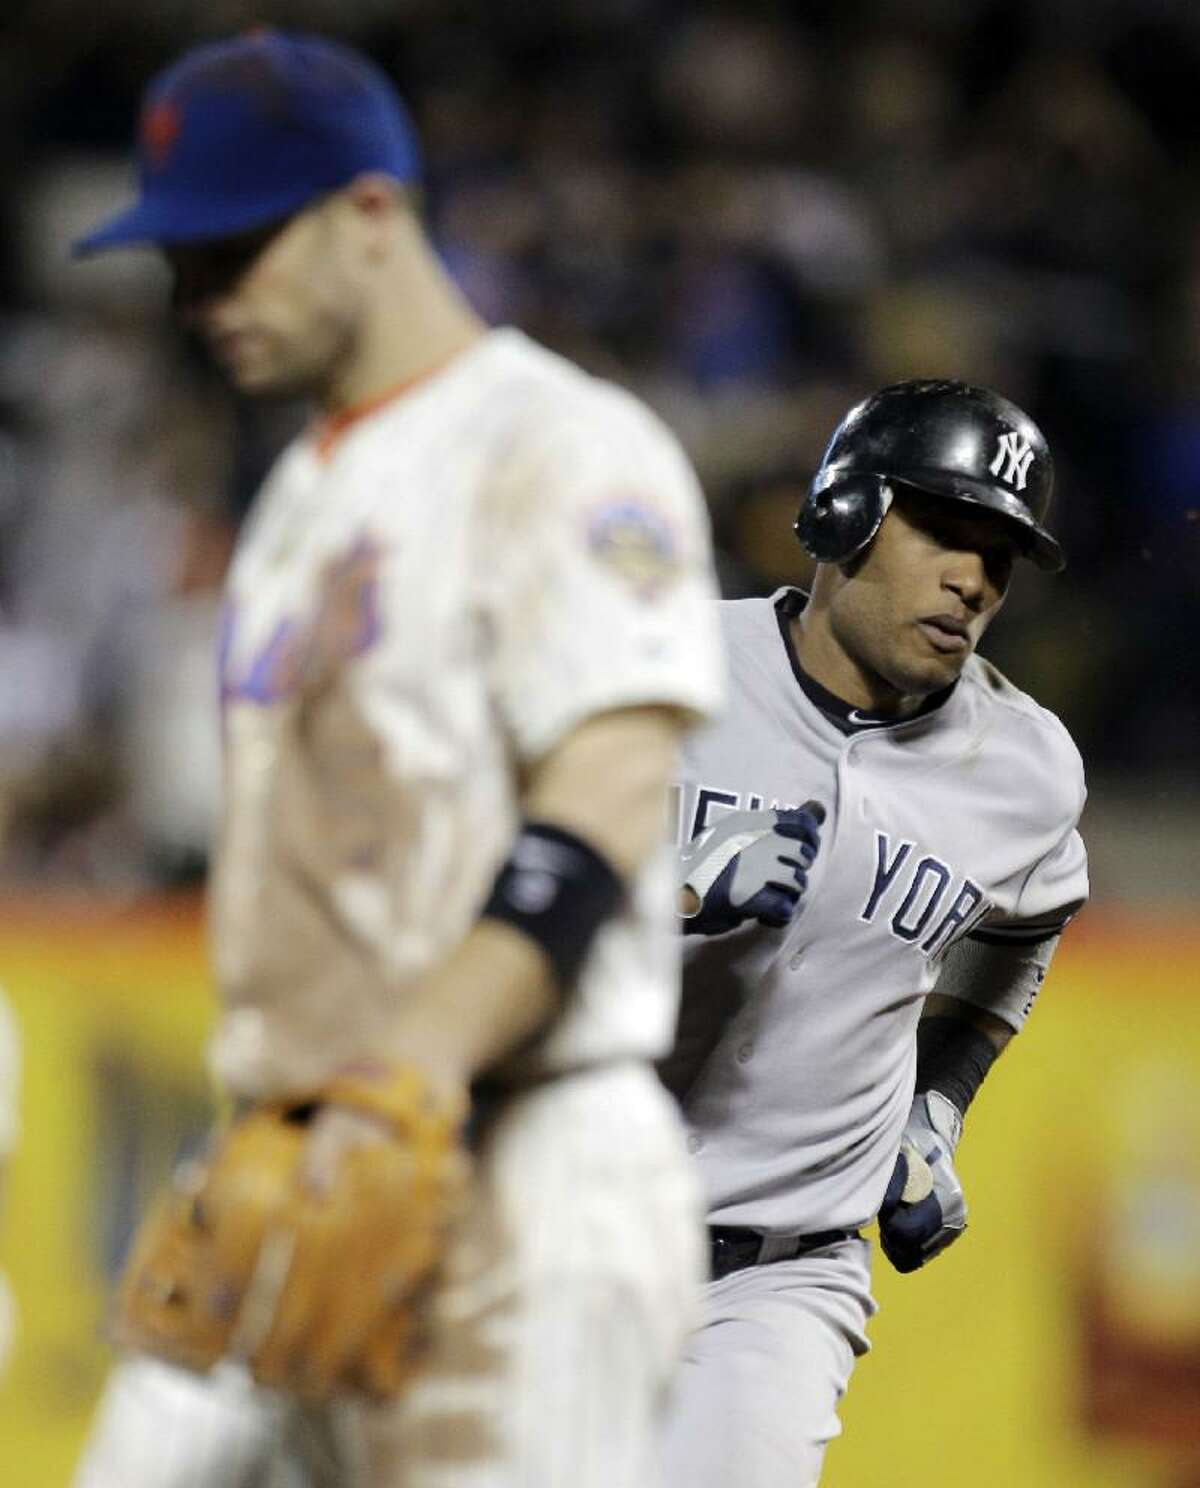 ASSOCIATED PRESS New York Yankees second baseman Robinson Cano, right, runs the bases past New York Mets third baseman David Wright after hitting a home run in the eighth inning of Sunday night's game at Citi Field in New York. The Yankees won 6-5.